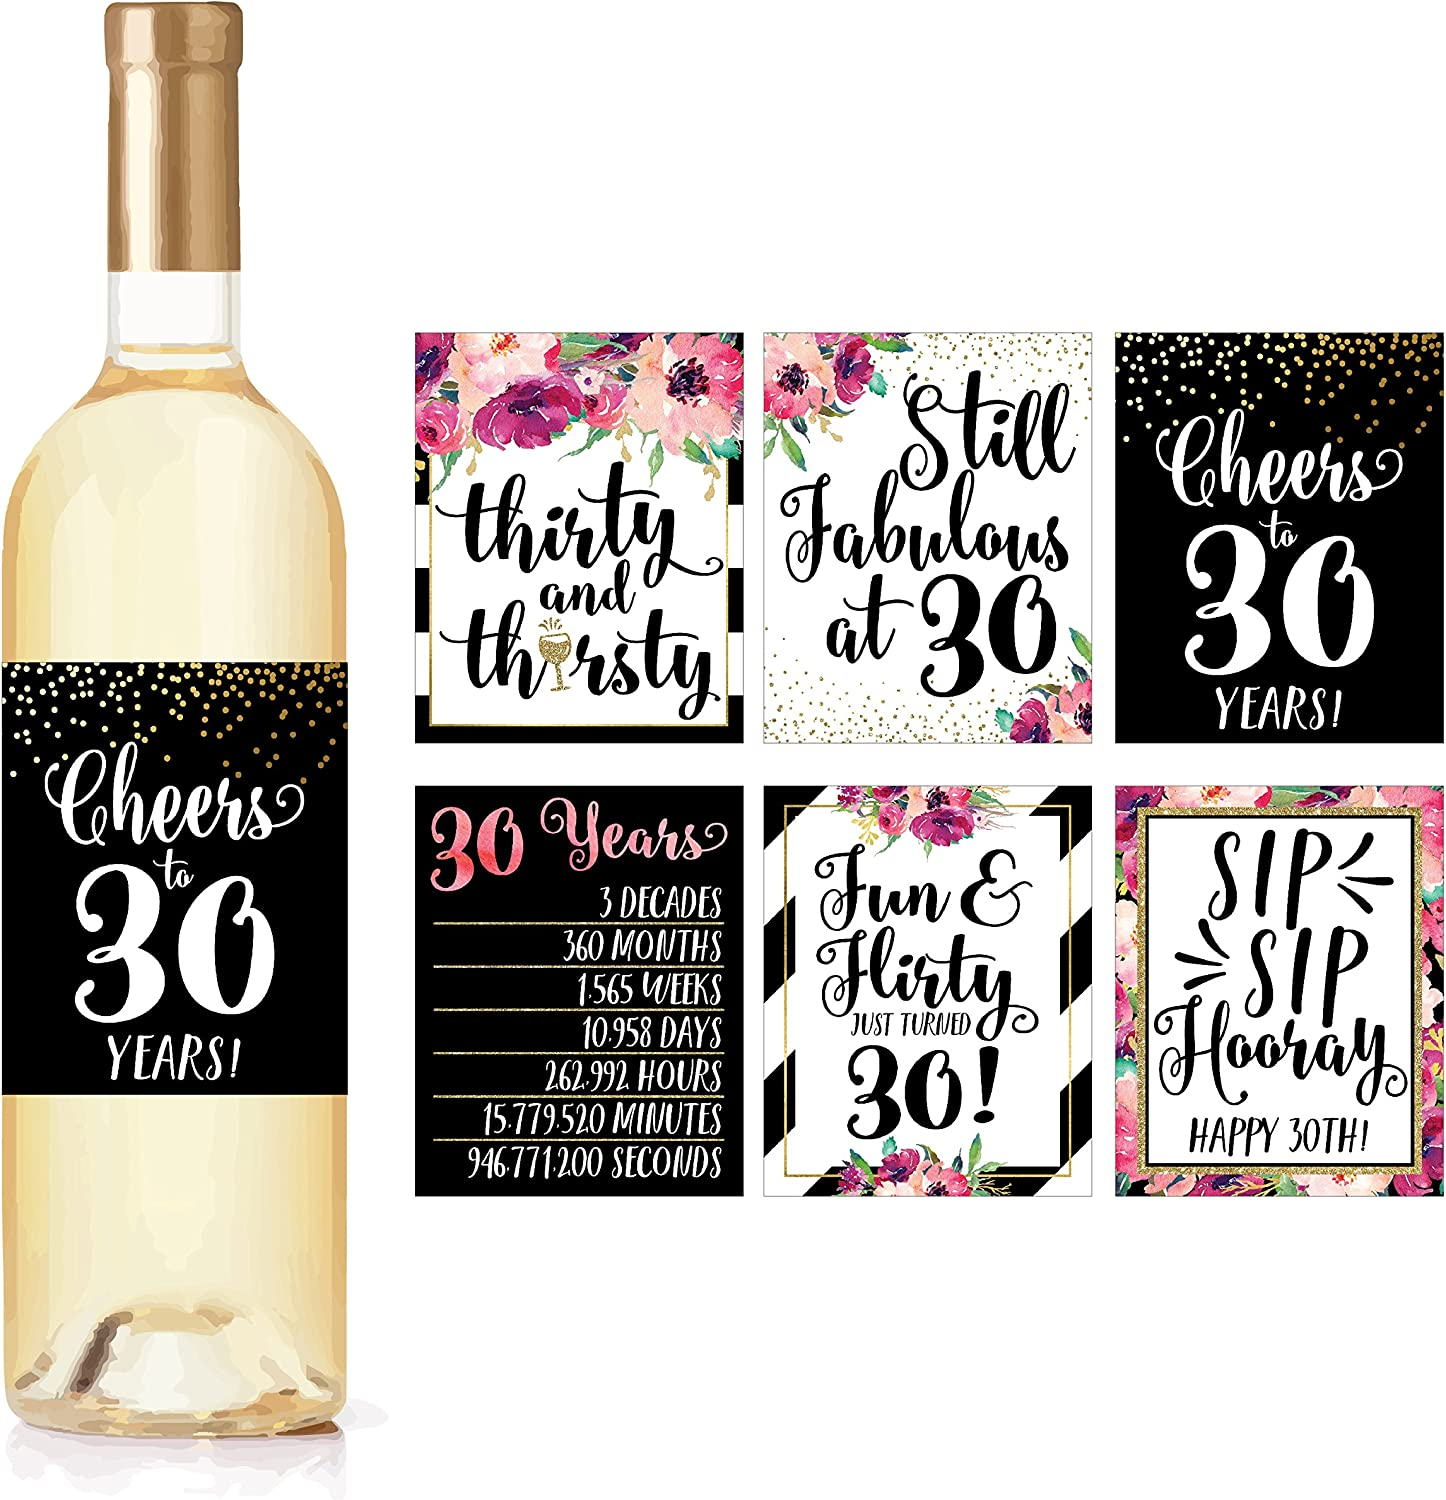 6 30th Birthday Wine Bottle Labels or Stickers Present, 1989 Dirty Thirsty Flirty Thirty Bday Gifts For Women, Cheers to 30 Years, Funny Pink Black Gold Party Decor Supplies For Wife, Girl Mom Friend